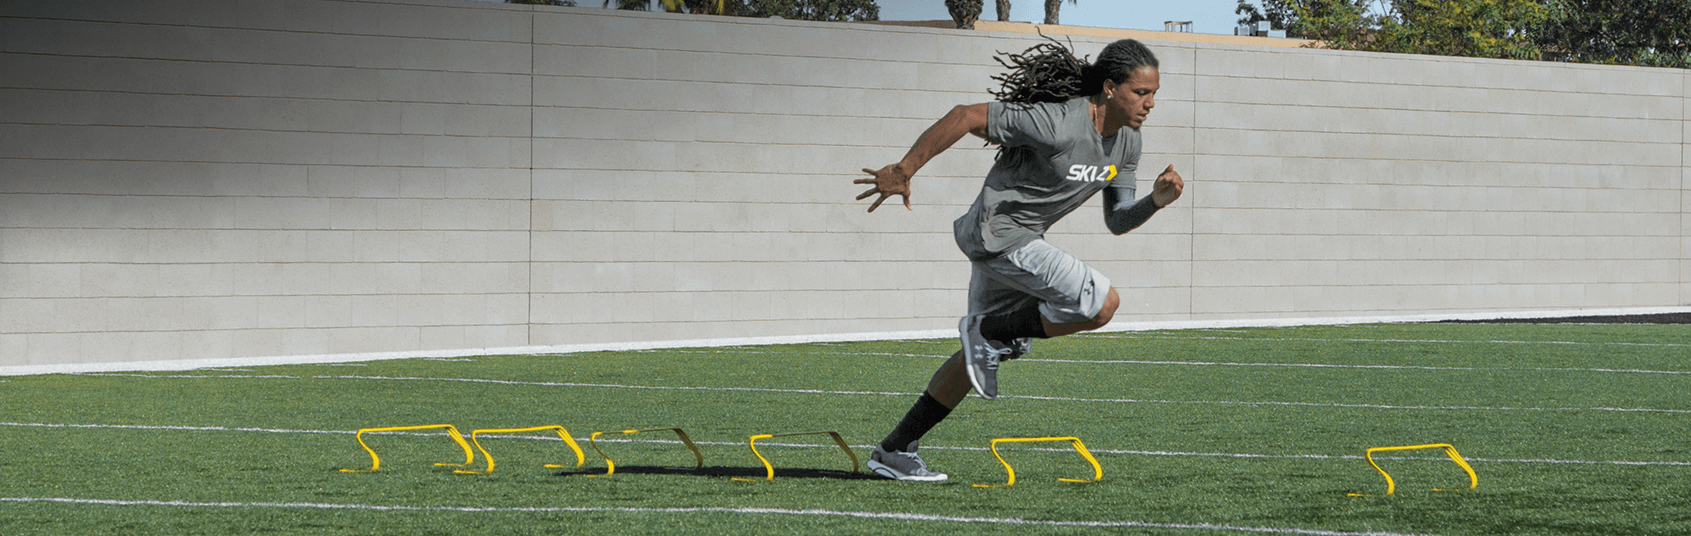 Shop football training gear from DICK'S including kicking tees, sleds, cones & more. Browse all football training gear so you can get better on the field.